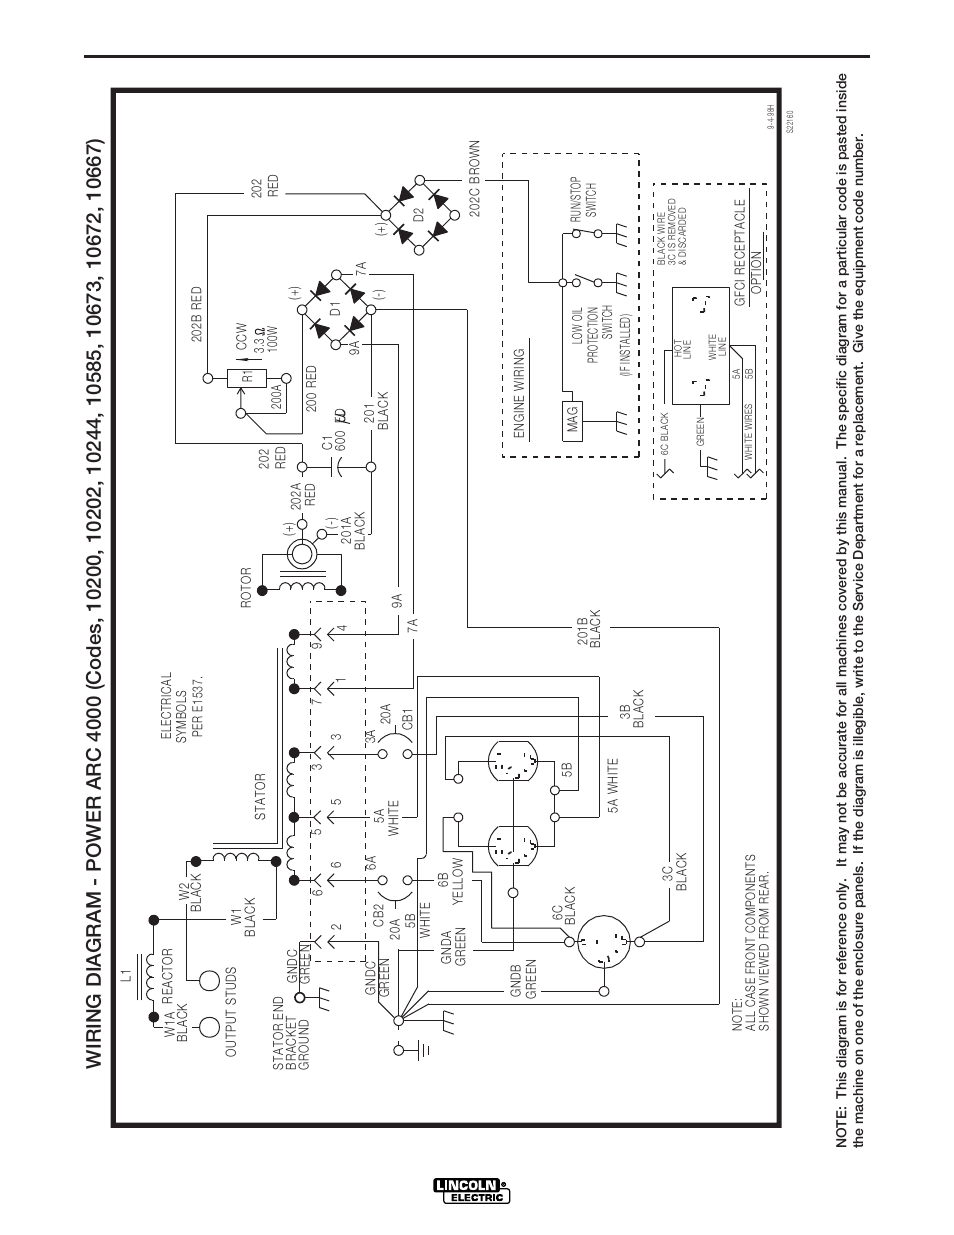 Wiring Diagram For Cessna 172. Wiring. Electrical Wiring